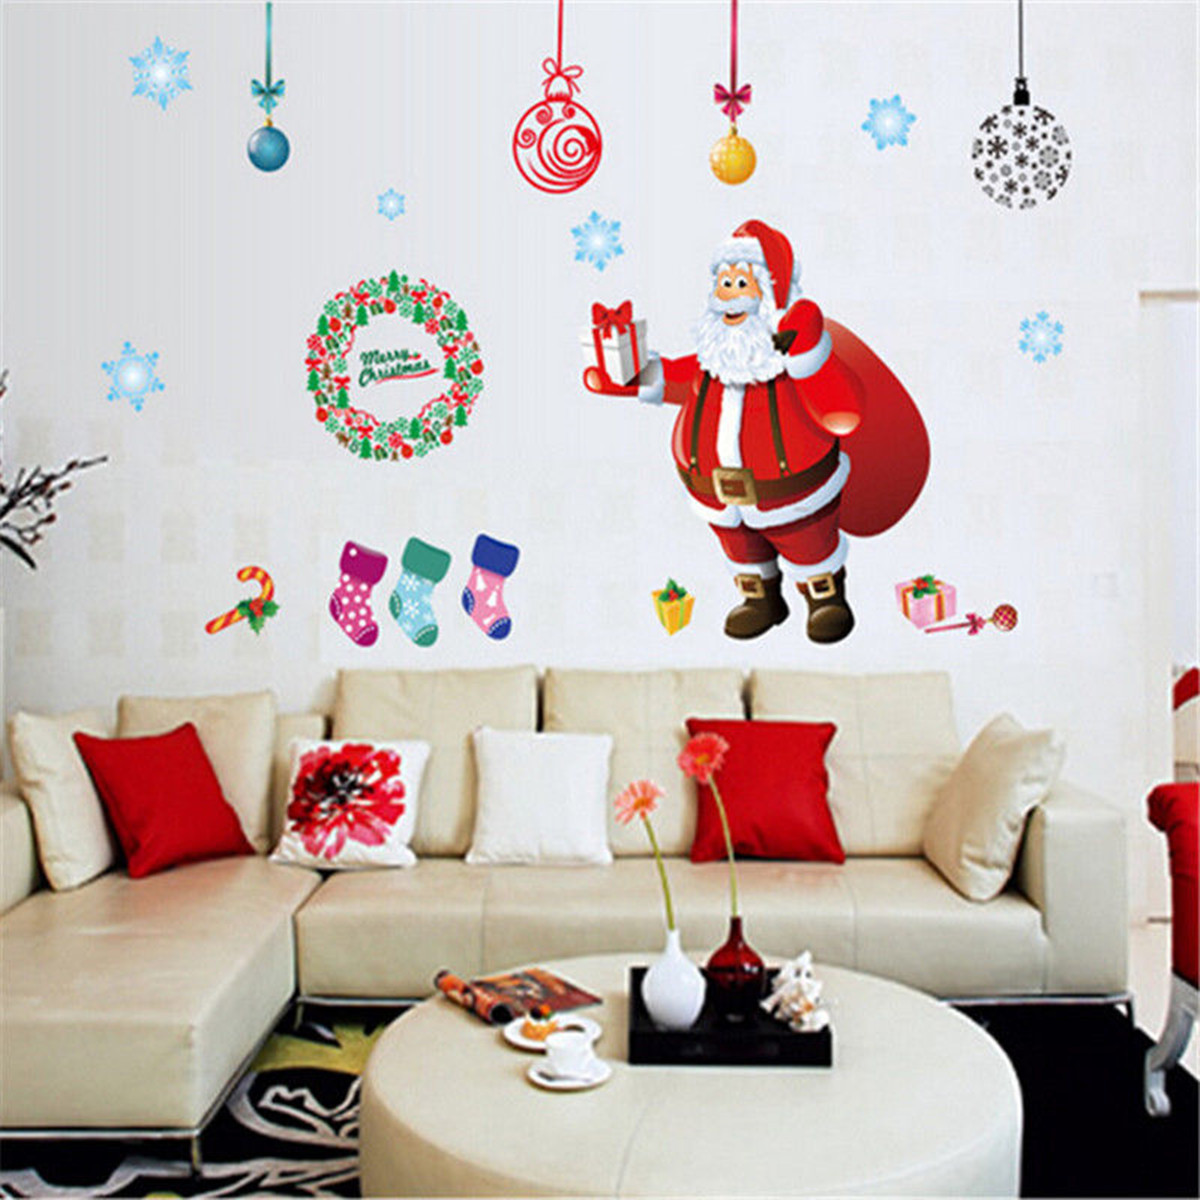 Christmas tree wall sticker santa claus gift wall art window home christmas tree wall sticker santa claus gift wall art window home decoration amipublicfo Images